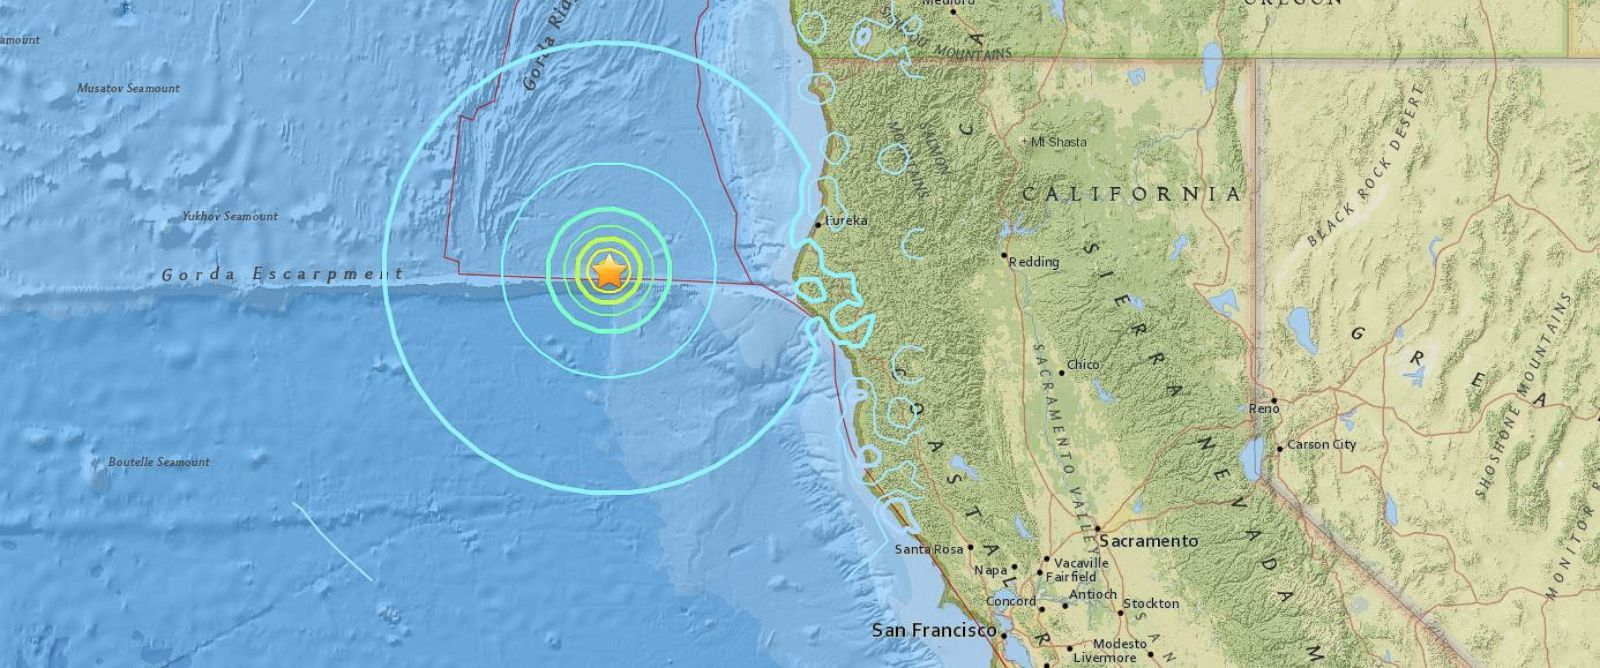 PHOTO: A map from the USGS Earthquake Hazards Program shows the epicenter of a 6.5 magnitude earthquake that struck off of the coast of California on Dec. 8, 2016.